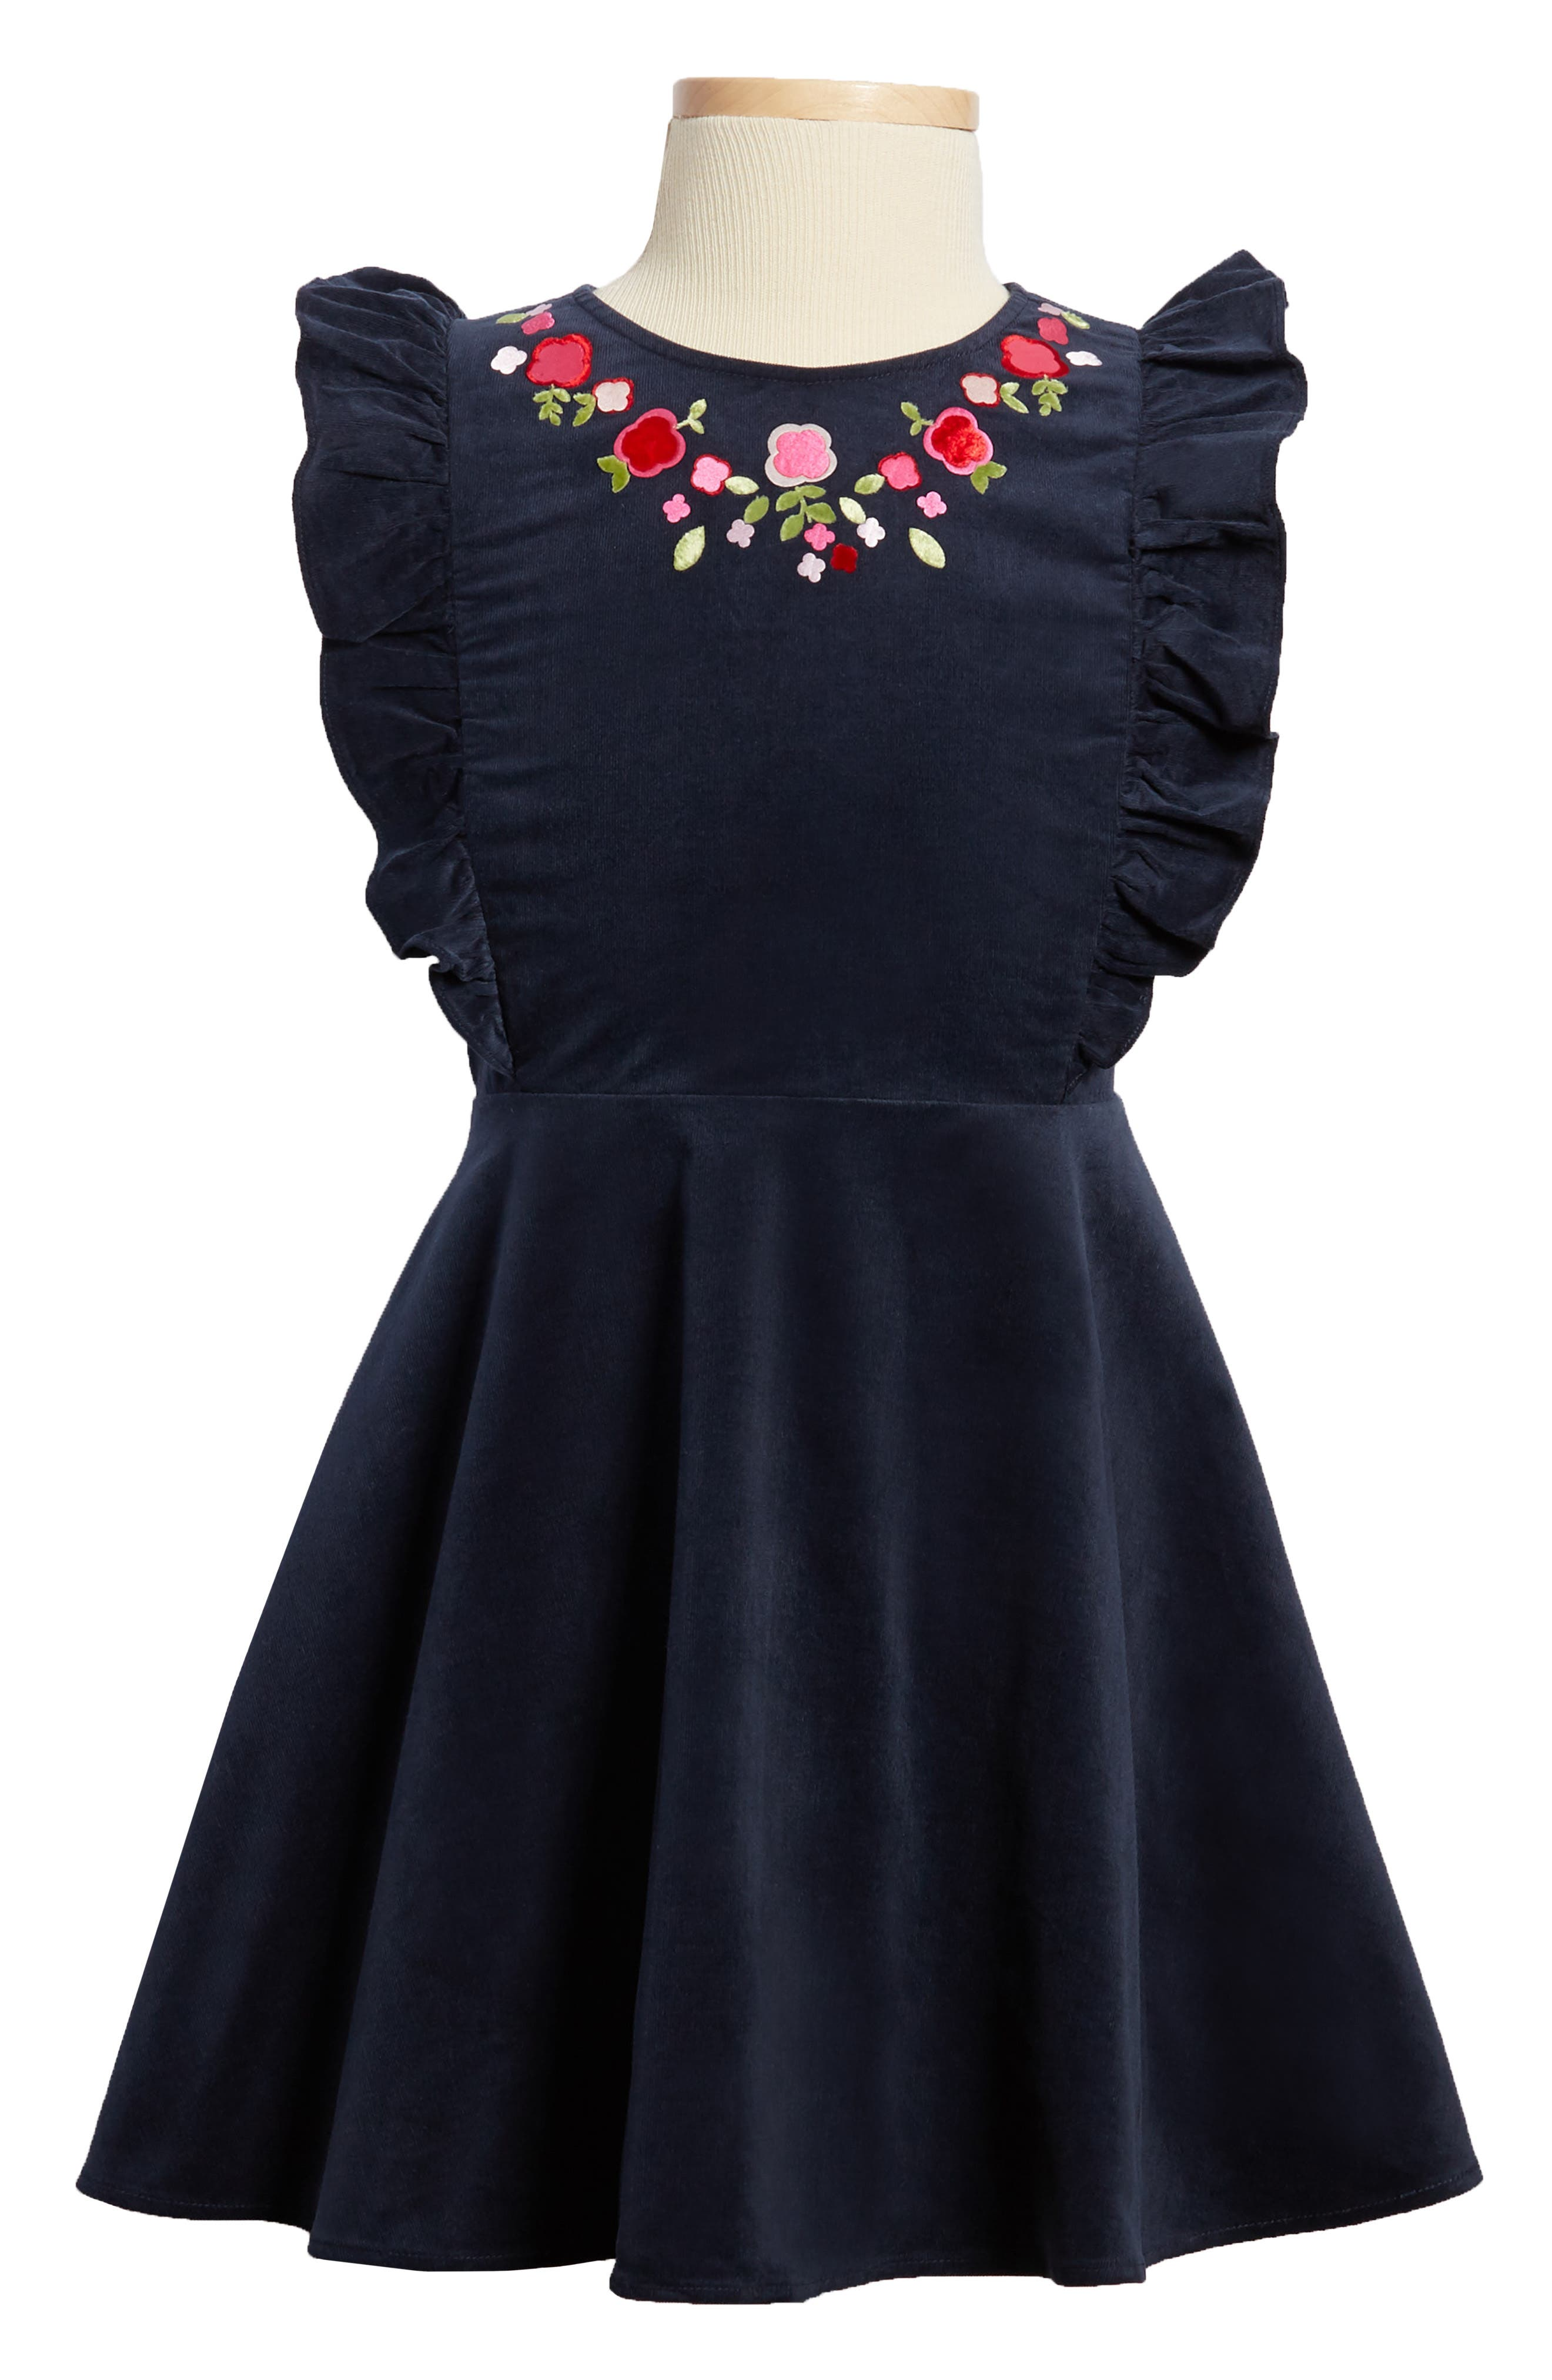 Floral Embroidered Corduroy Dress,                         Main,                         color, Regal